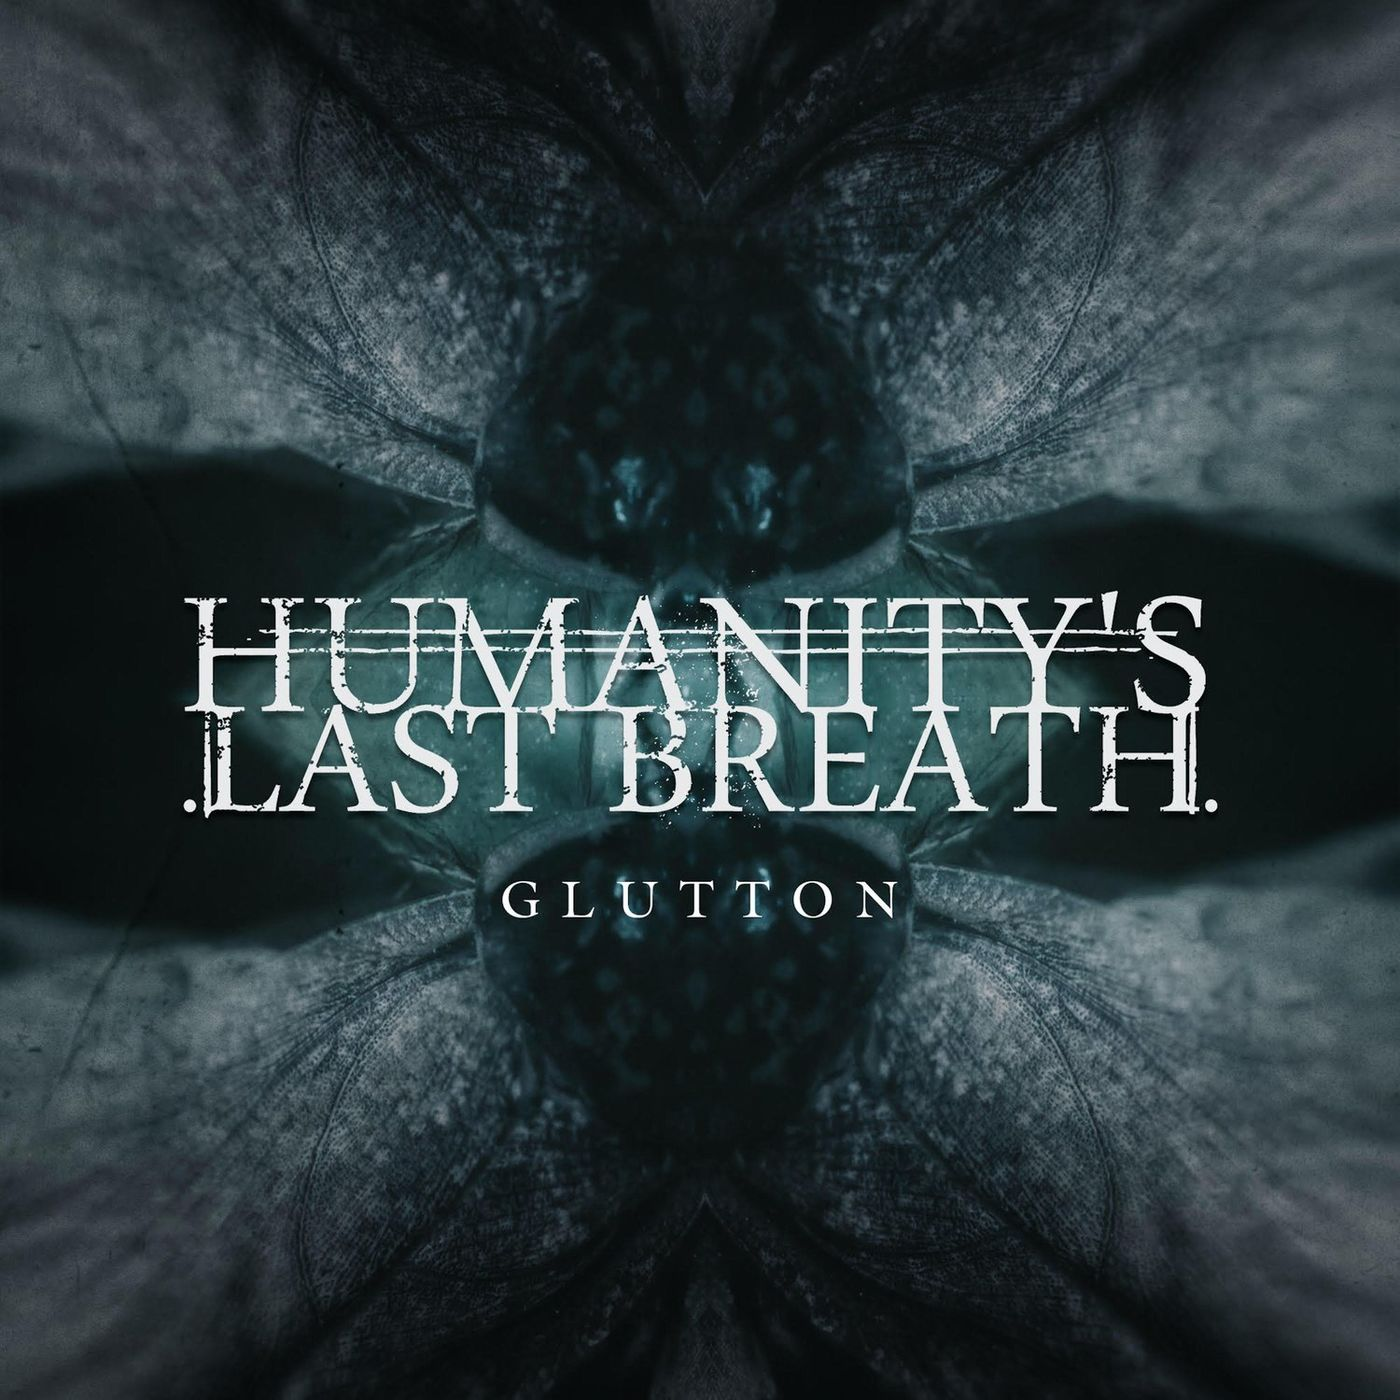 Humanity's Last Breath - Glutton [single] (2021)